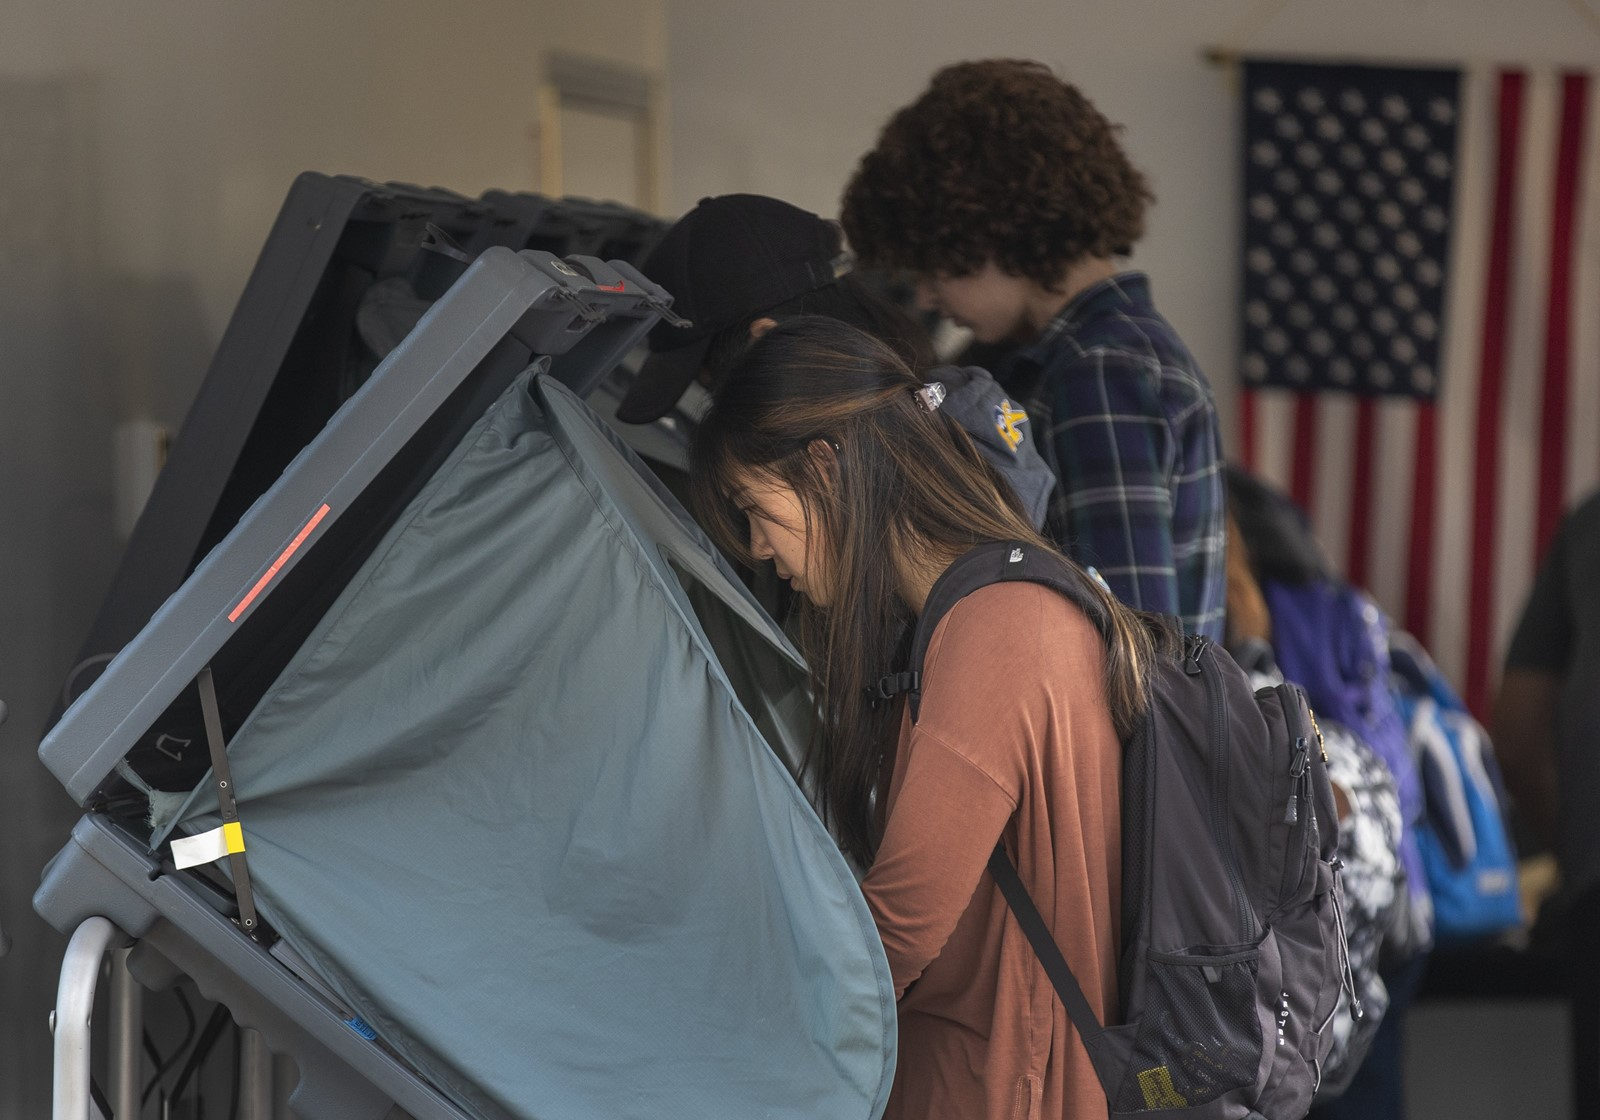 People cast ballots on Thursday at an early-voting center at UC Irvine, ahead of election day on Tuesday. — Photograph: Allen J. Schaben/Los Angeles Times.